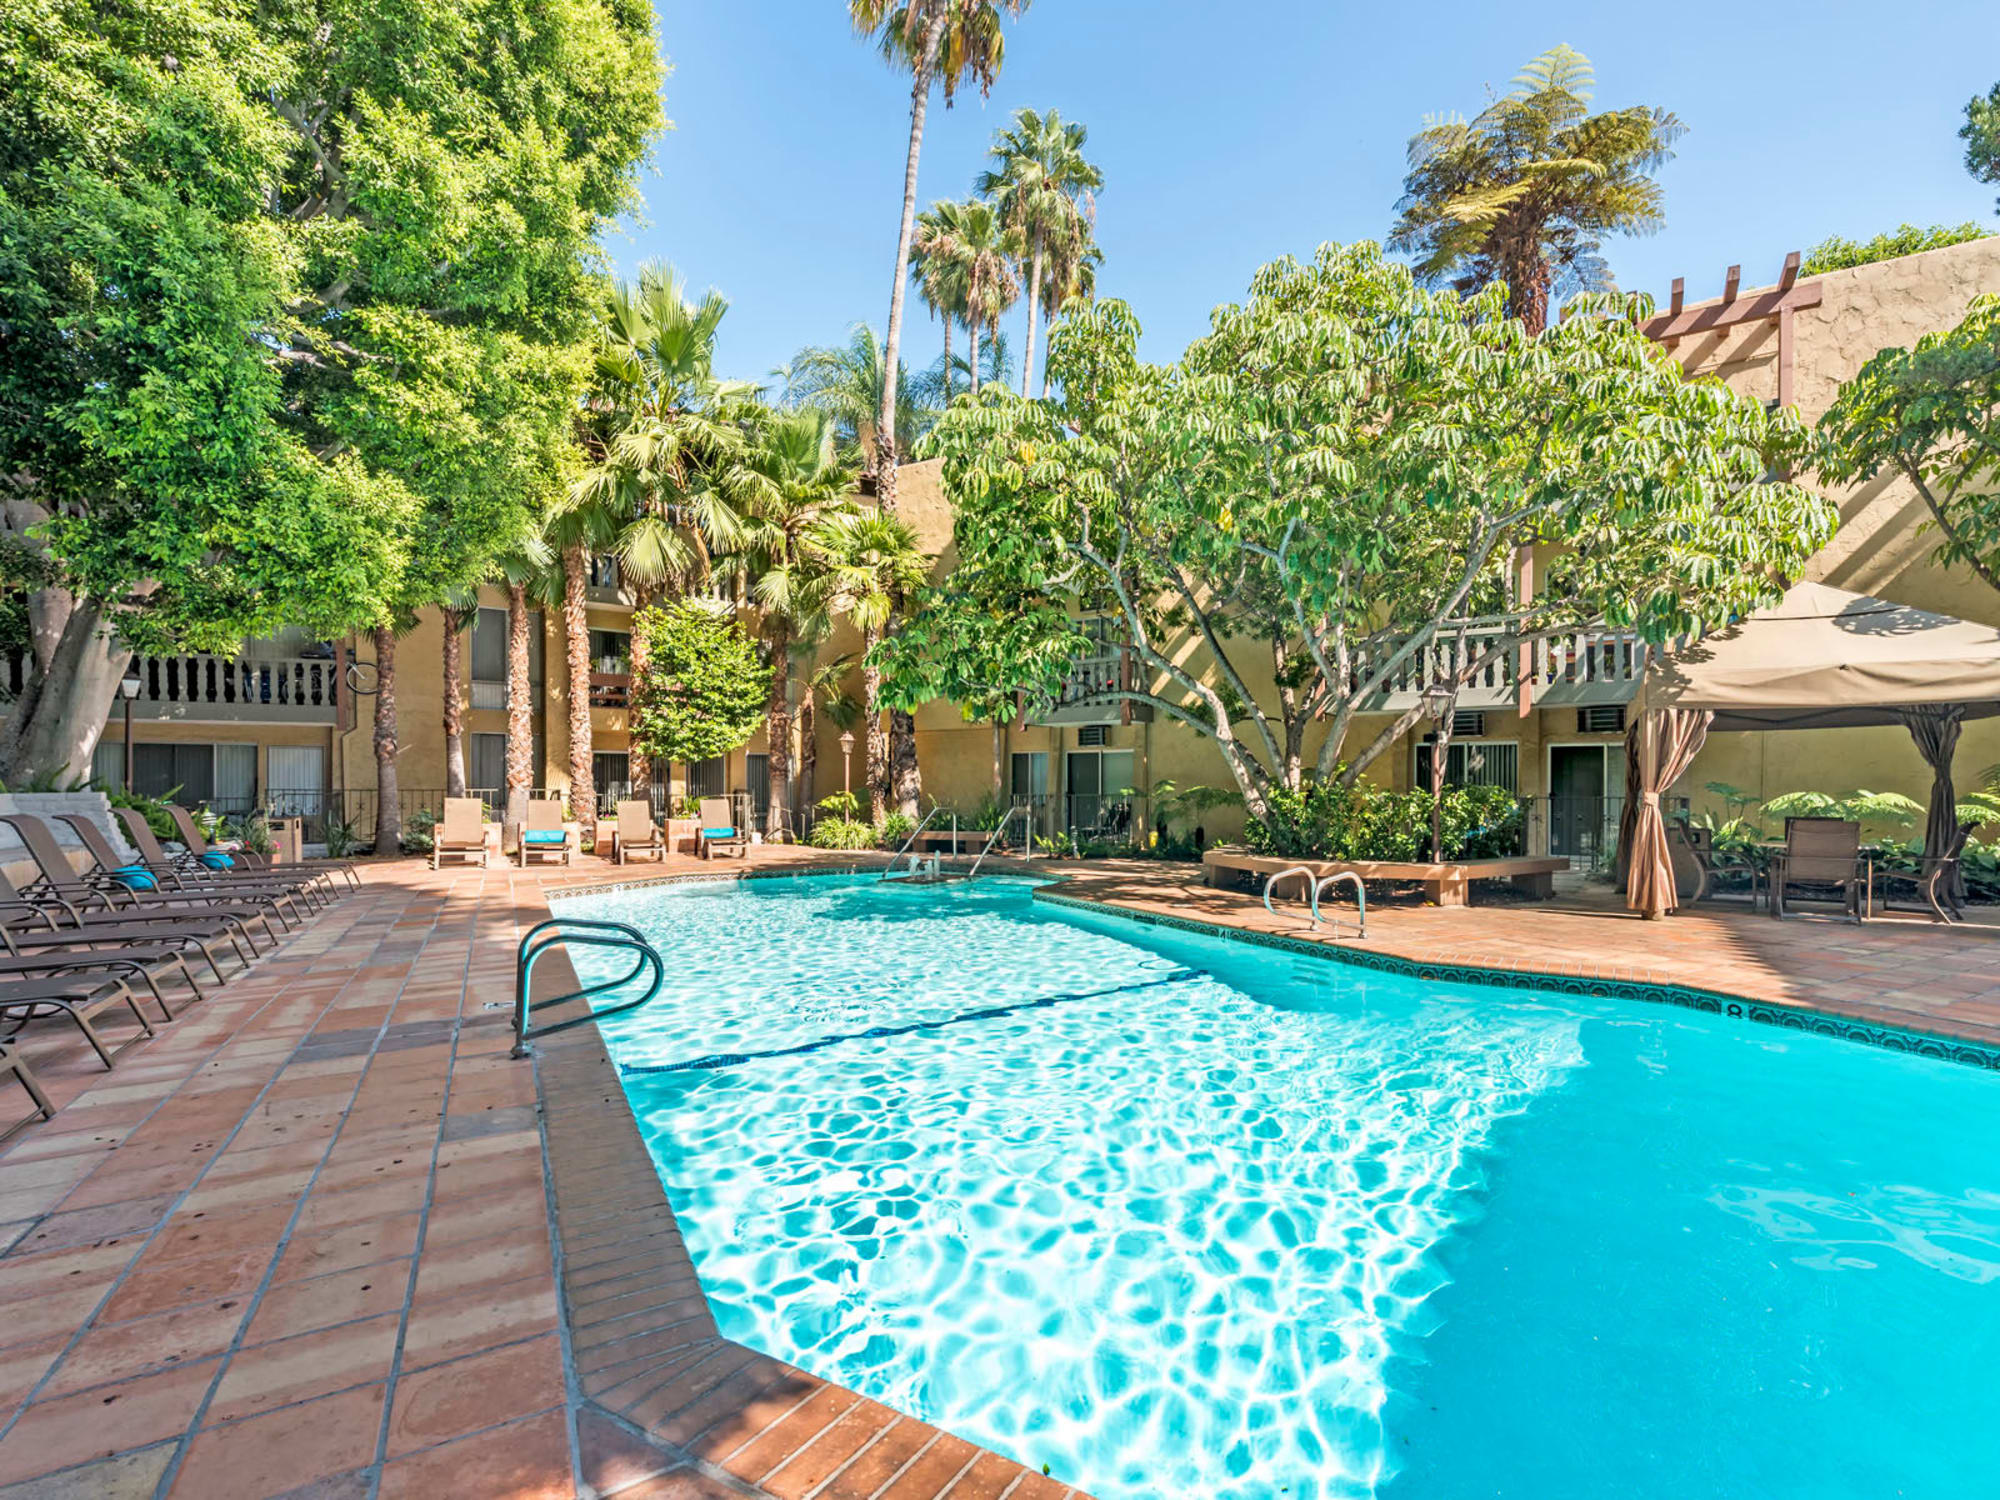 Resort-style swimming pool surrounded by palm trees at Mediterranean Village in West Hollywood, California